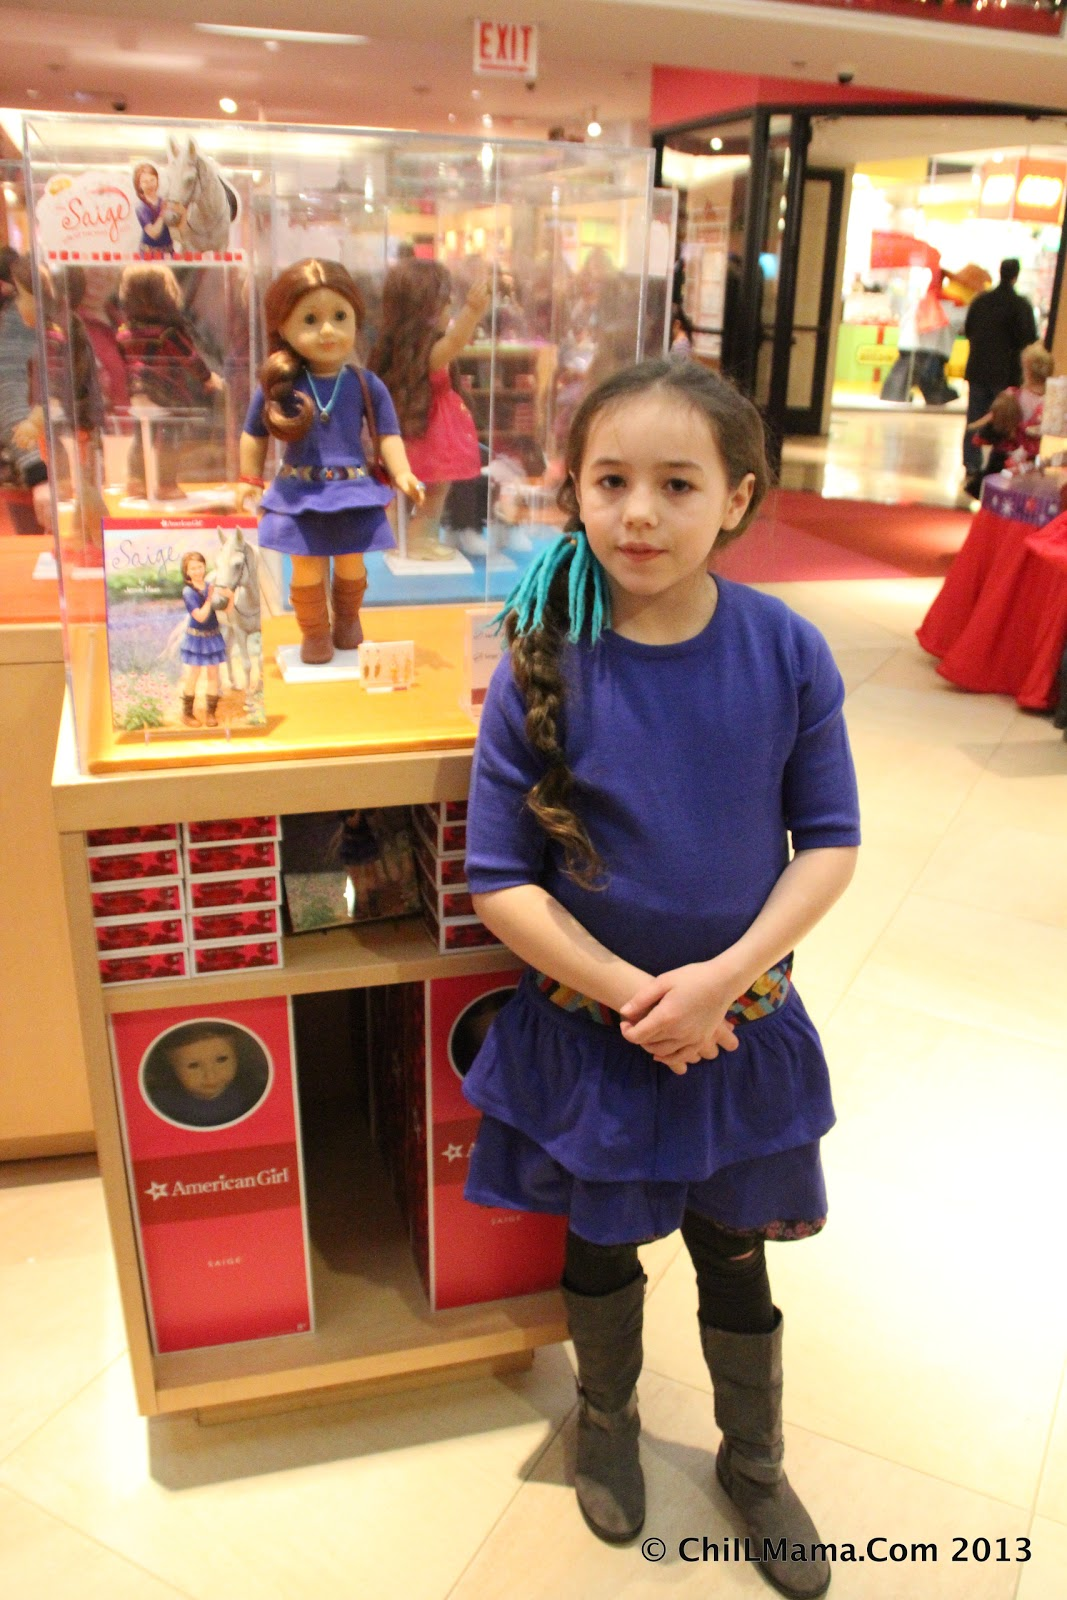 Me play for girl